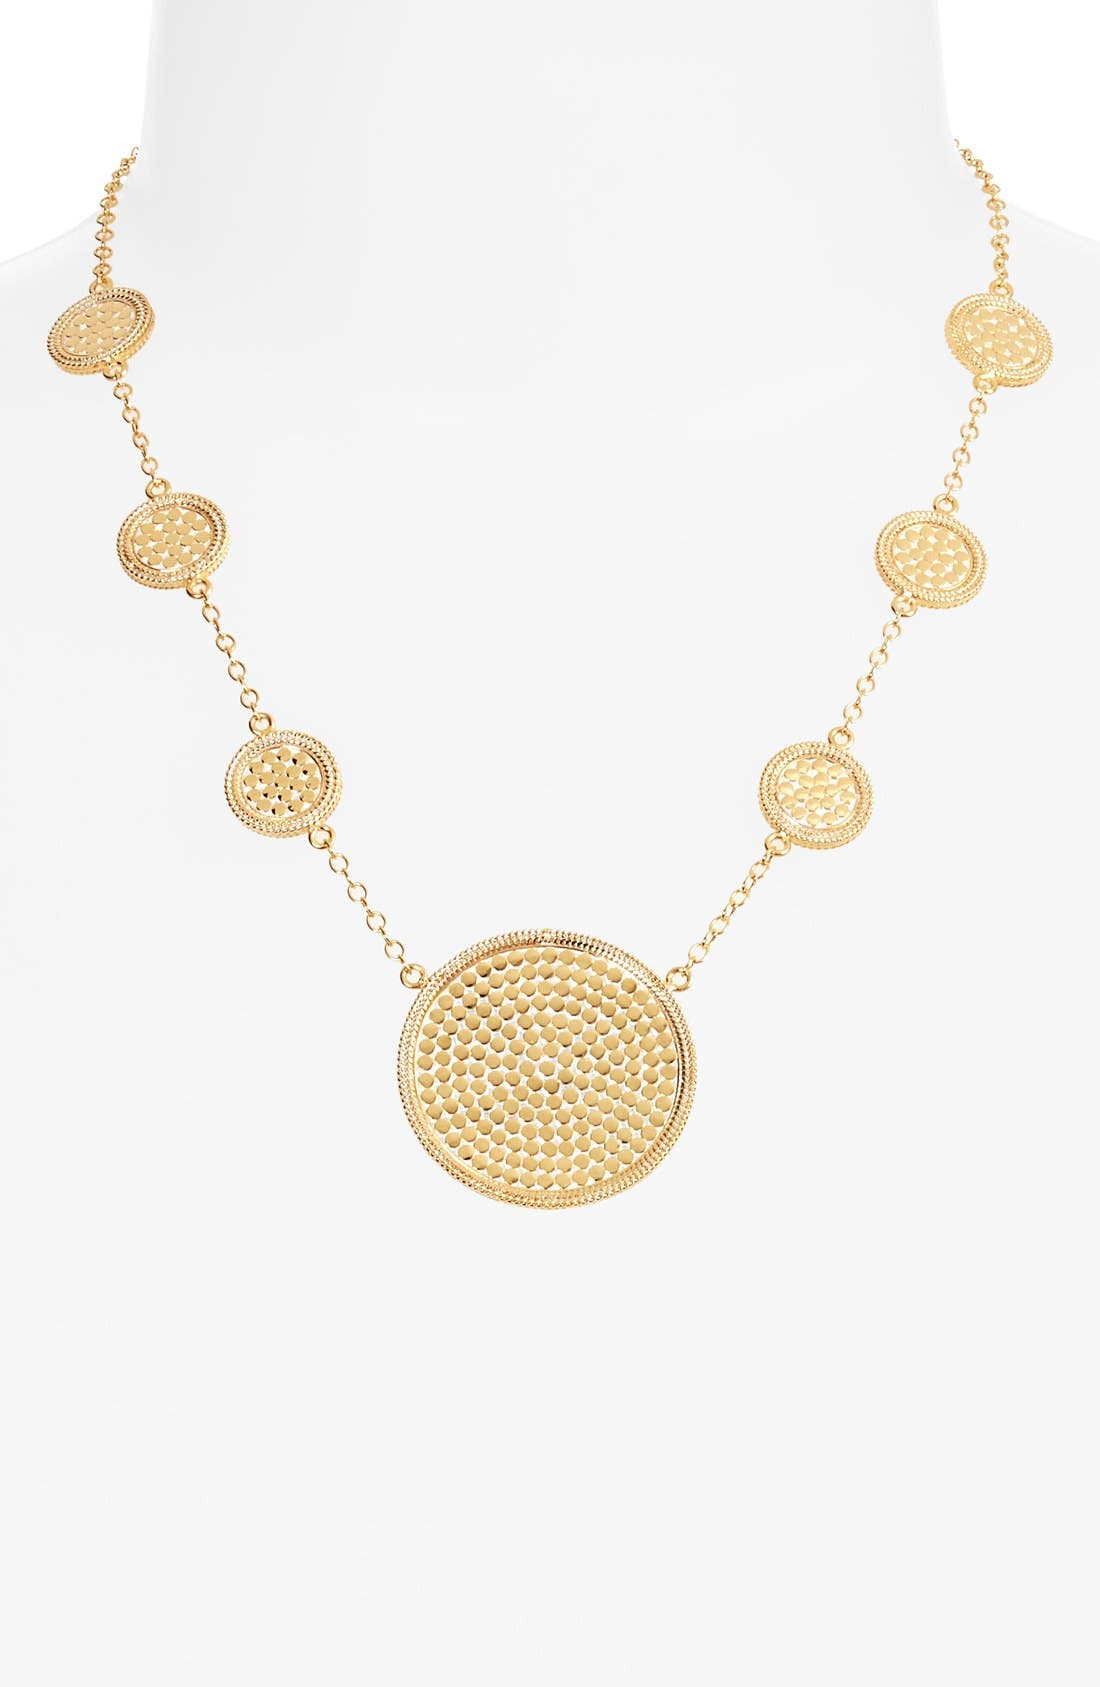 Alternate Image 1 Selected - Anna Beck 'Gili' Frontal Station Necklace